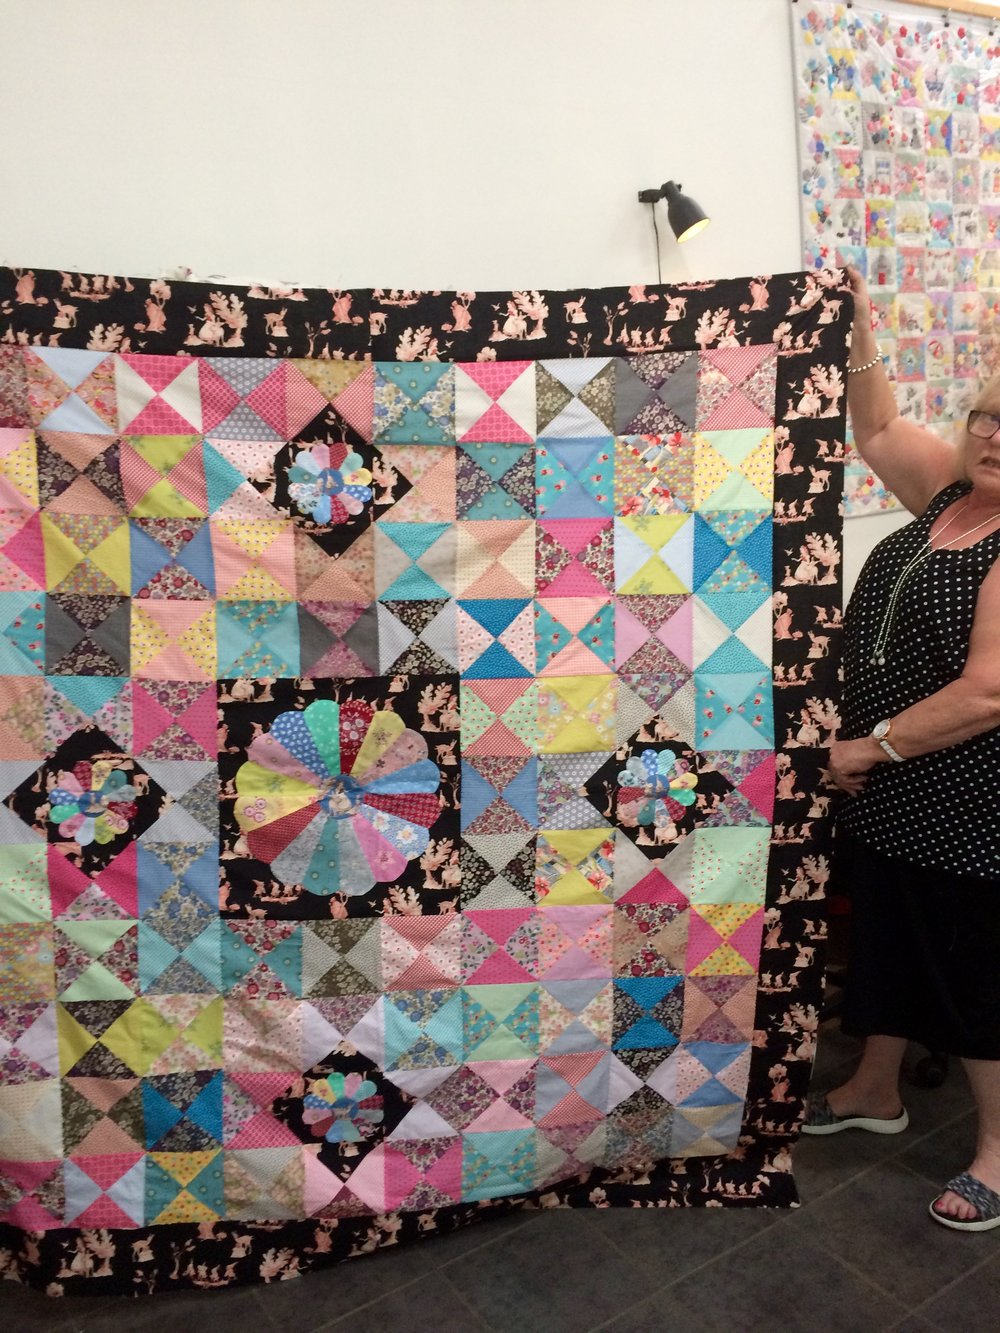 Mary-Ann and her stunning Into the Woods quilt.